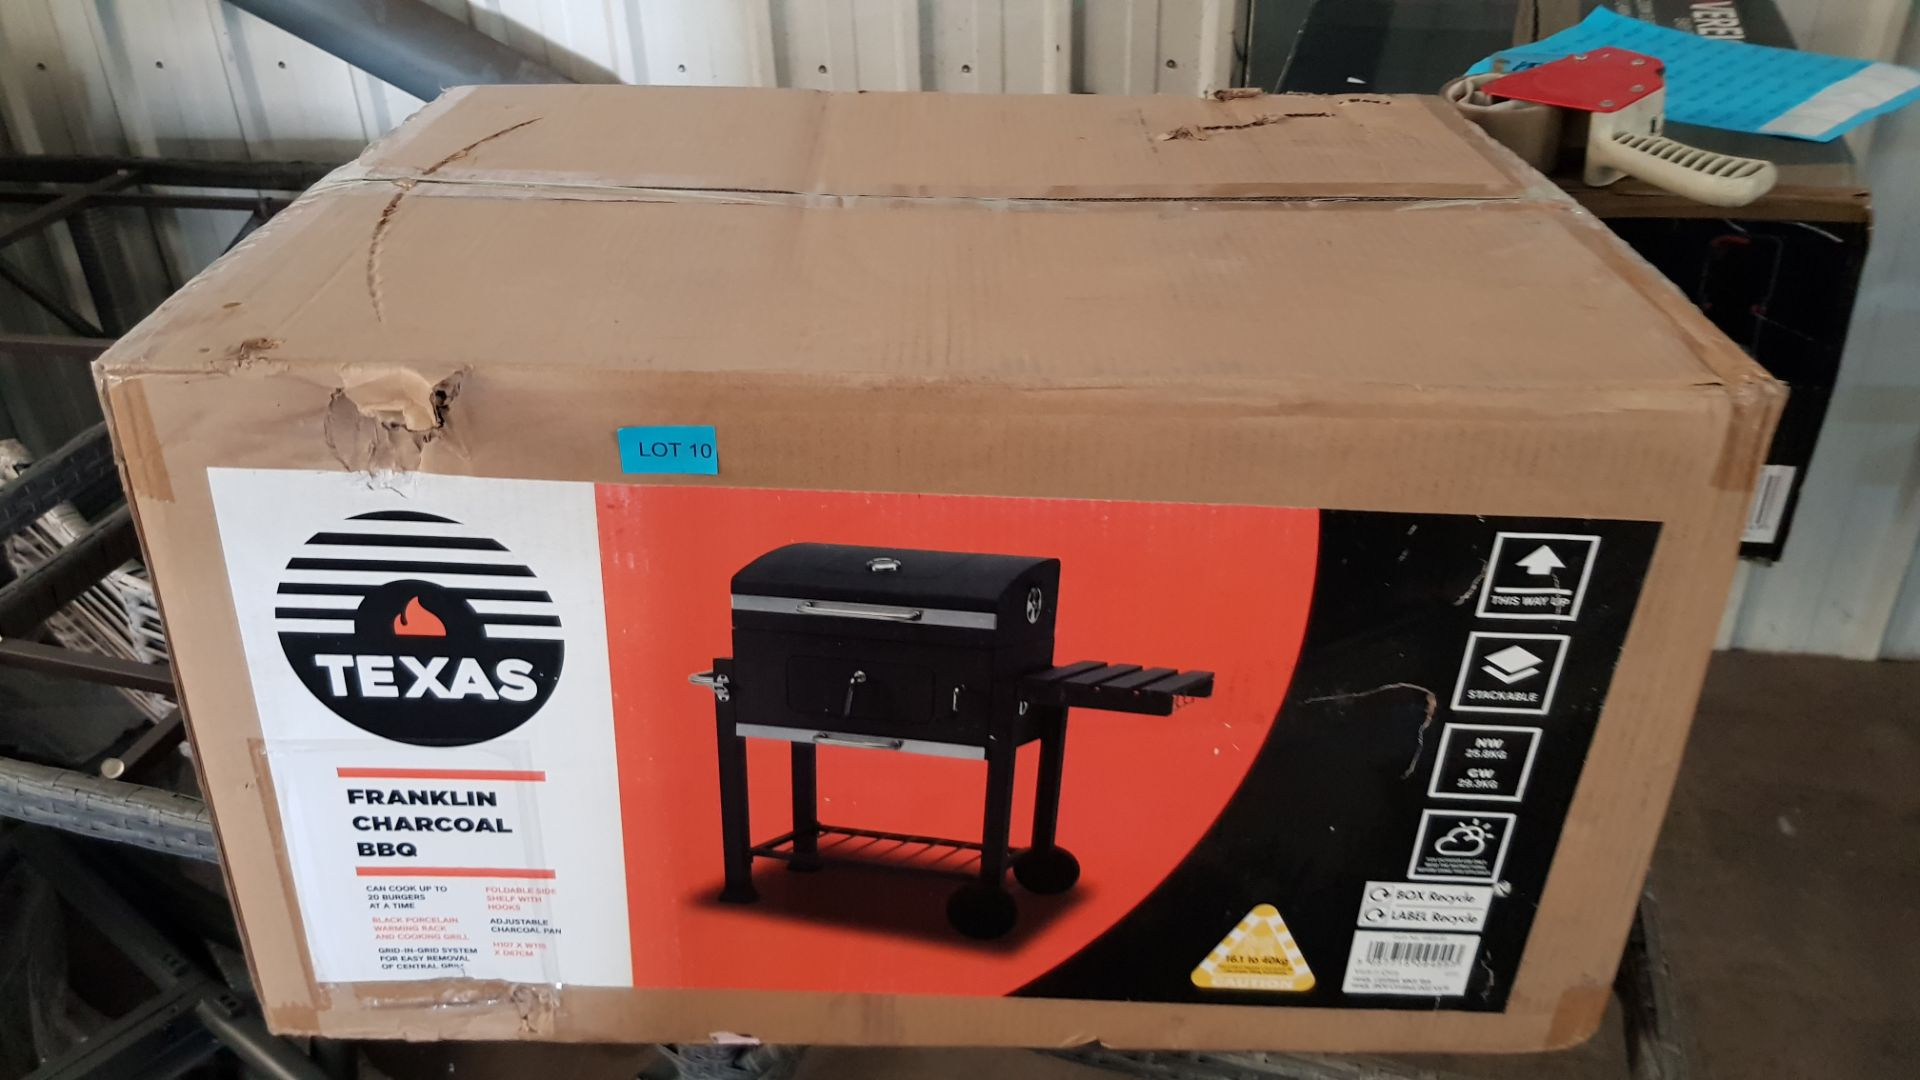 (P8) 1x Texas Franklin Charcoal BBQ. RRP £180.00. New, Sealed Unit With Slight Box Damage. - Image 3 of 3